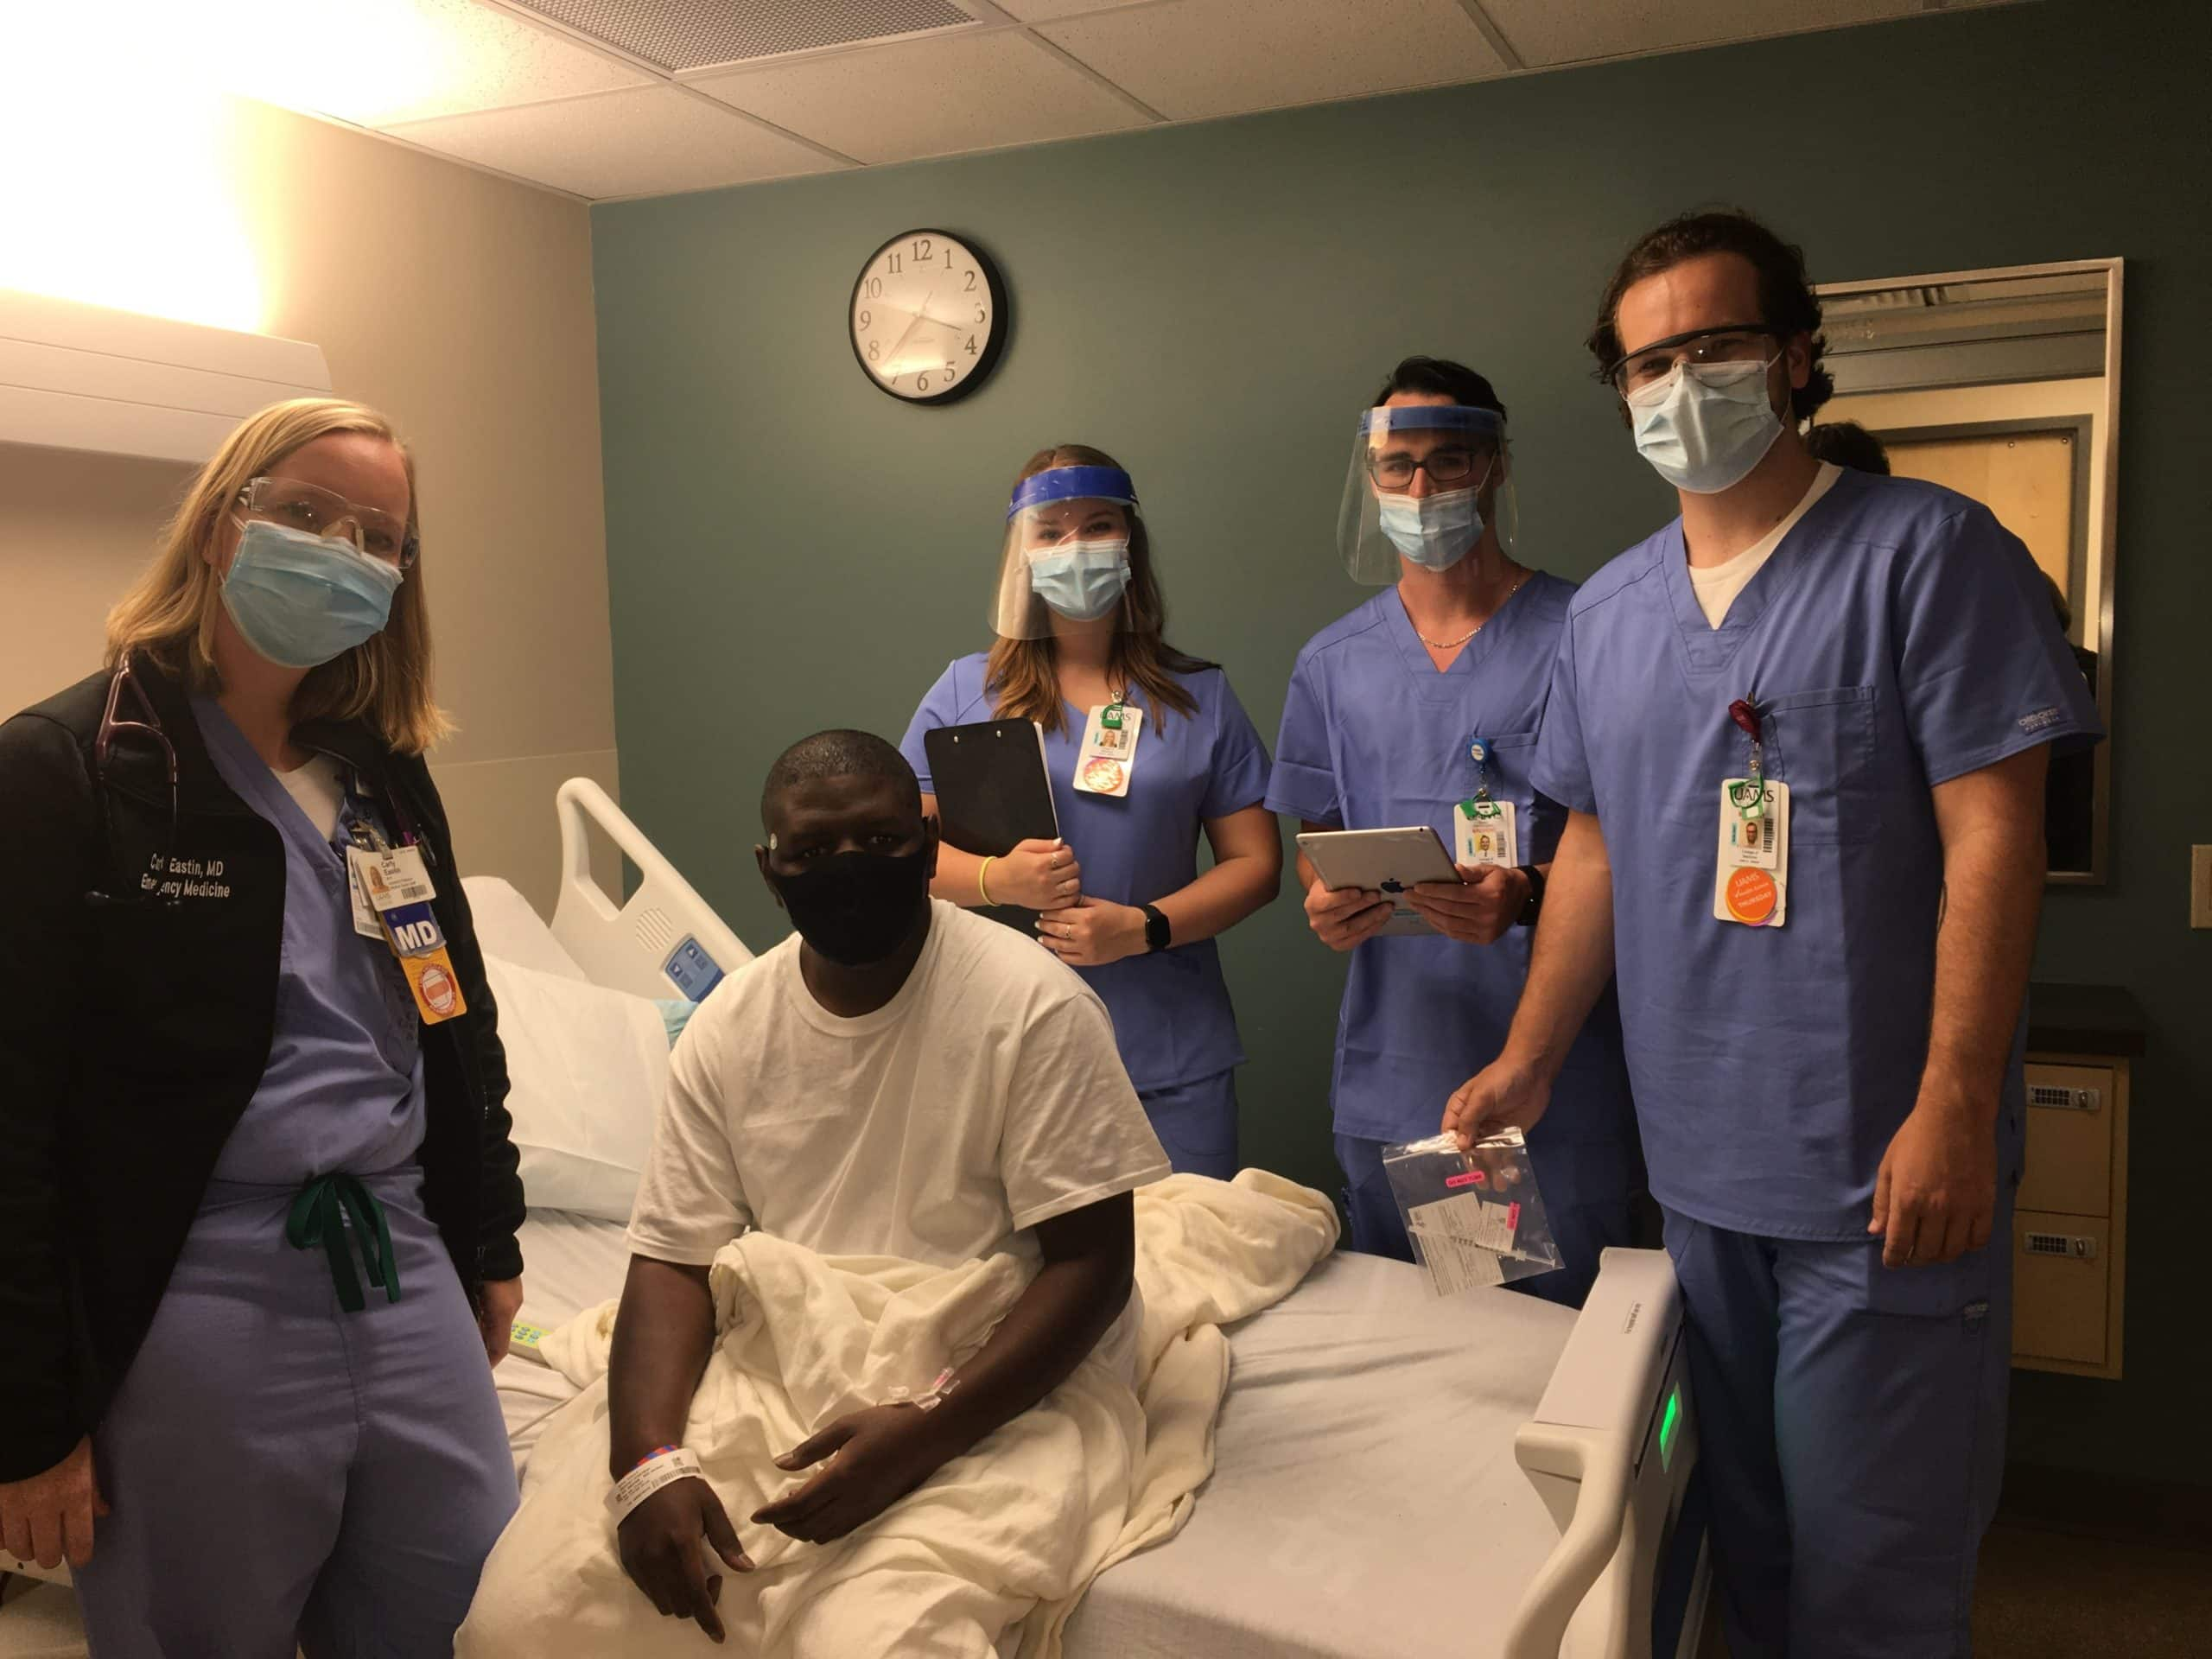 Carly Eastin, M.D., left, patient Antonio Jackson and second-year medical students Cammie York, Beau Pennington and Luke Lefler.